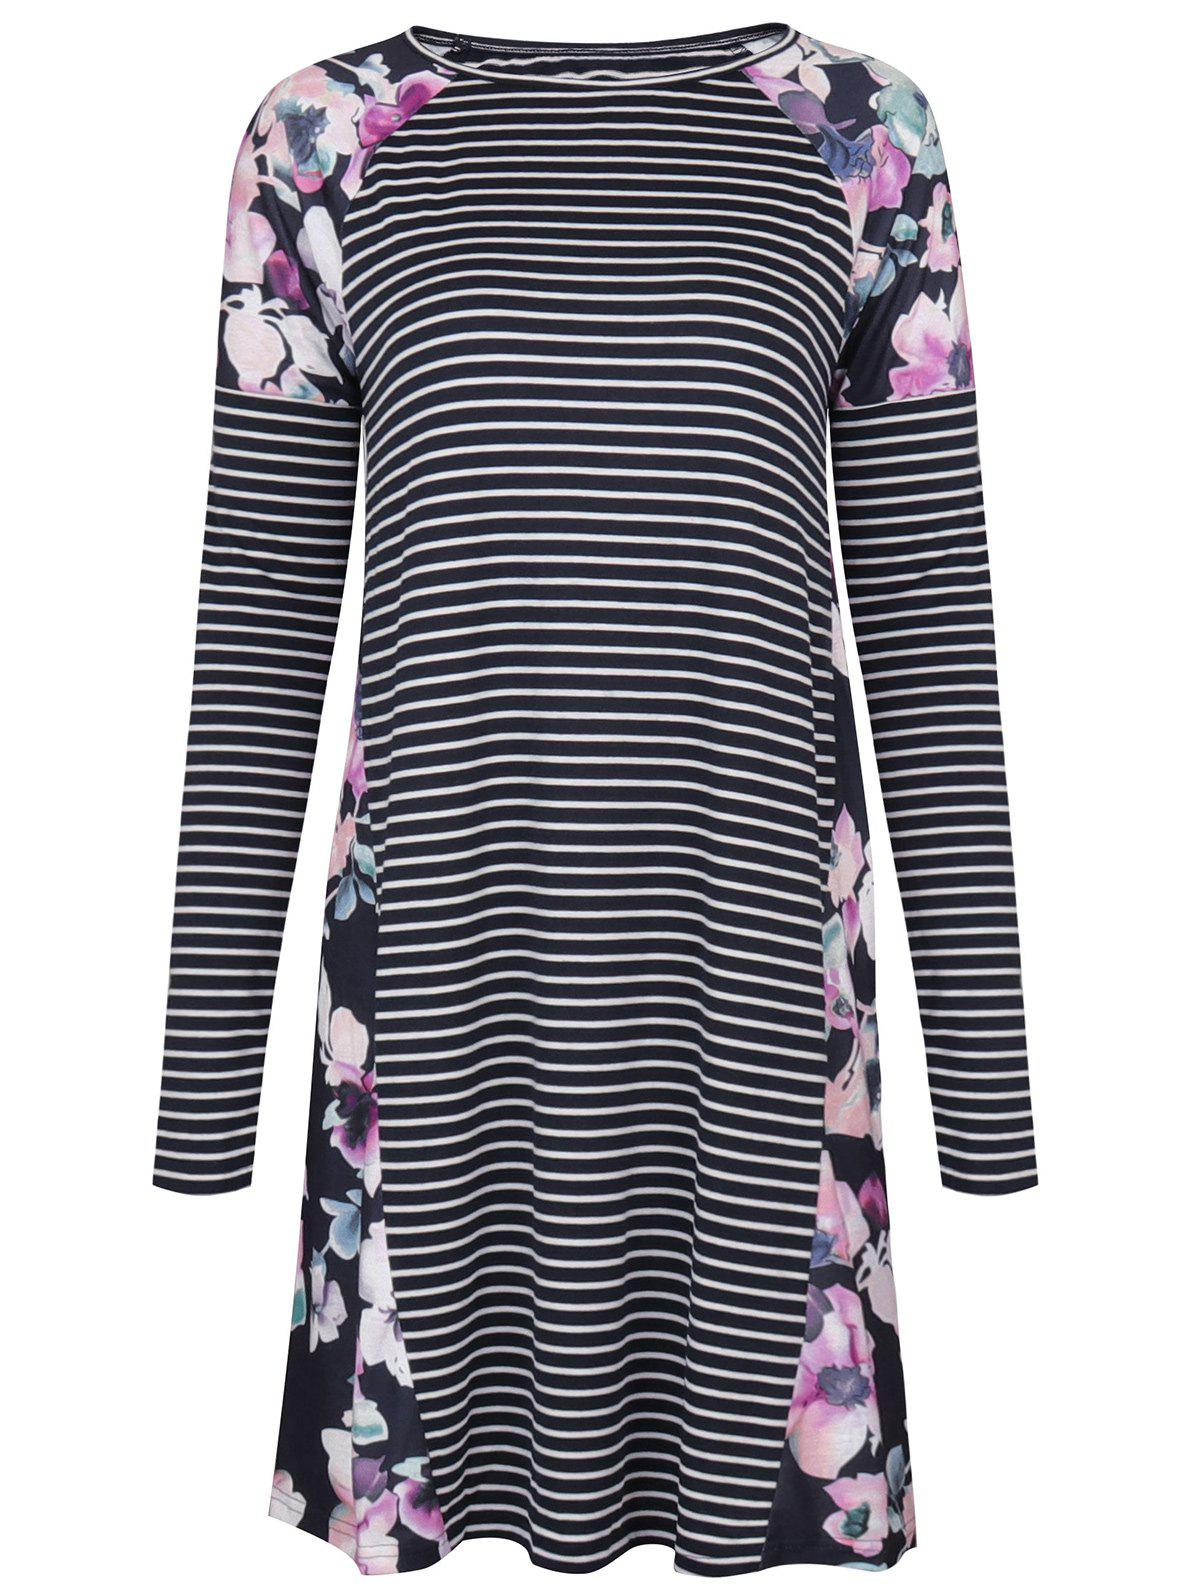 Raglan Sleeve Floral Print Striped Dress - PURPLISH BLUE XL